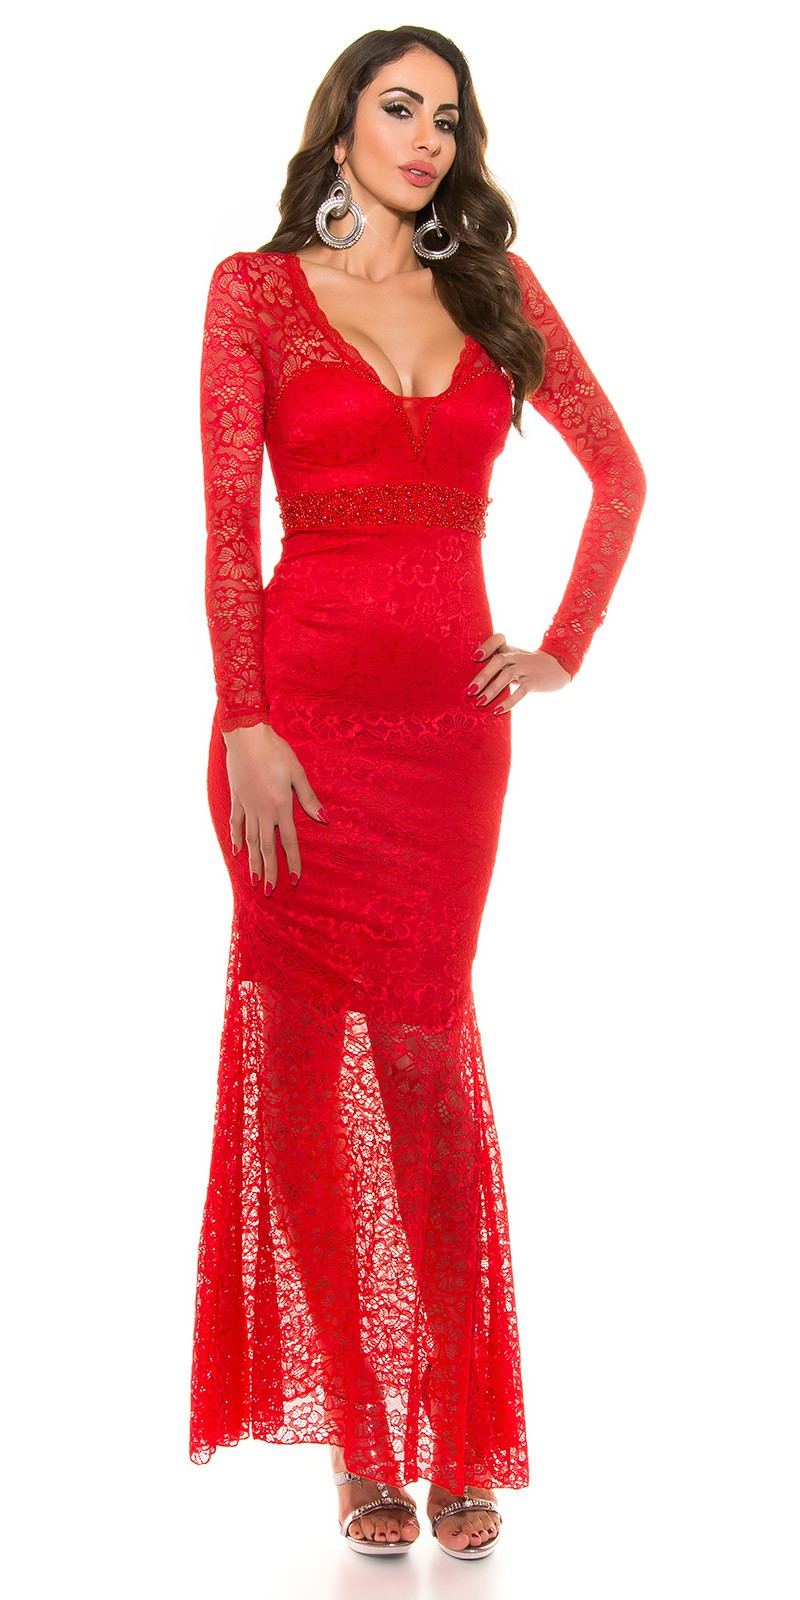 392f6b18c17f ooKoucla evening dress laces  Color RED Size S 0000K9149 ROT 6 ·  ooKoucla evening dress laces  Color RED Size S 0000K9149 ROT 4